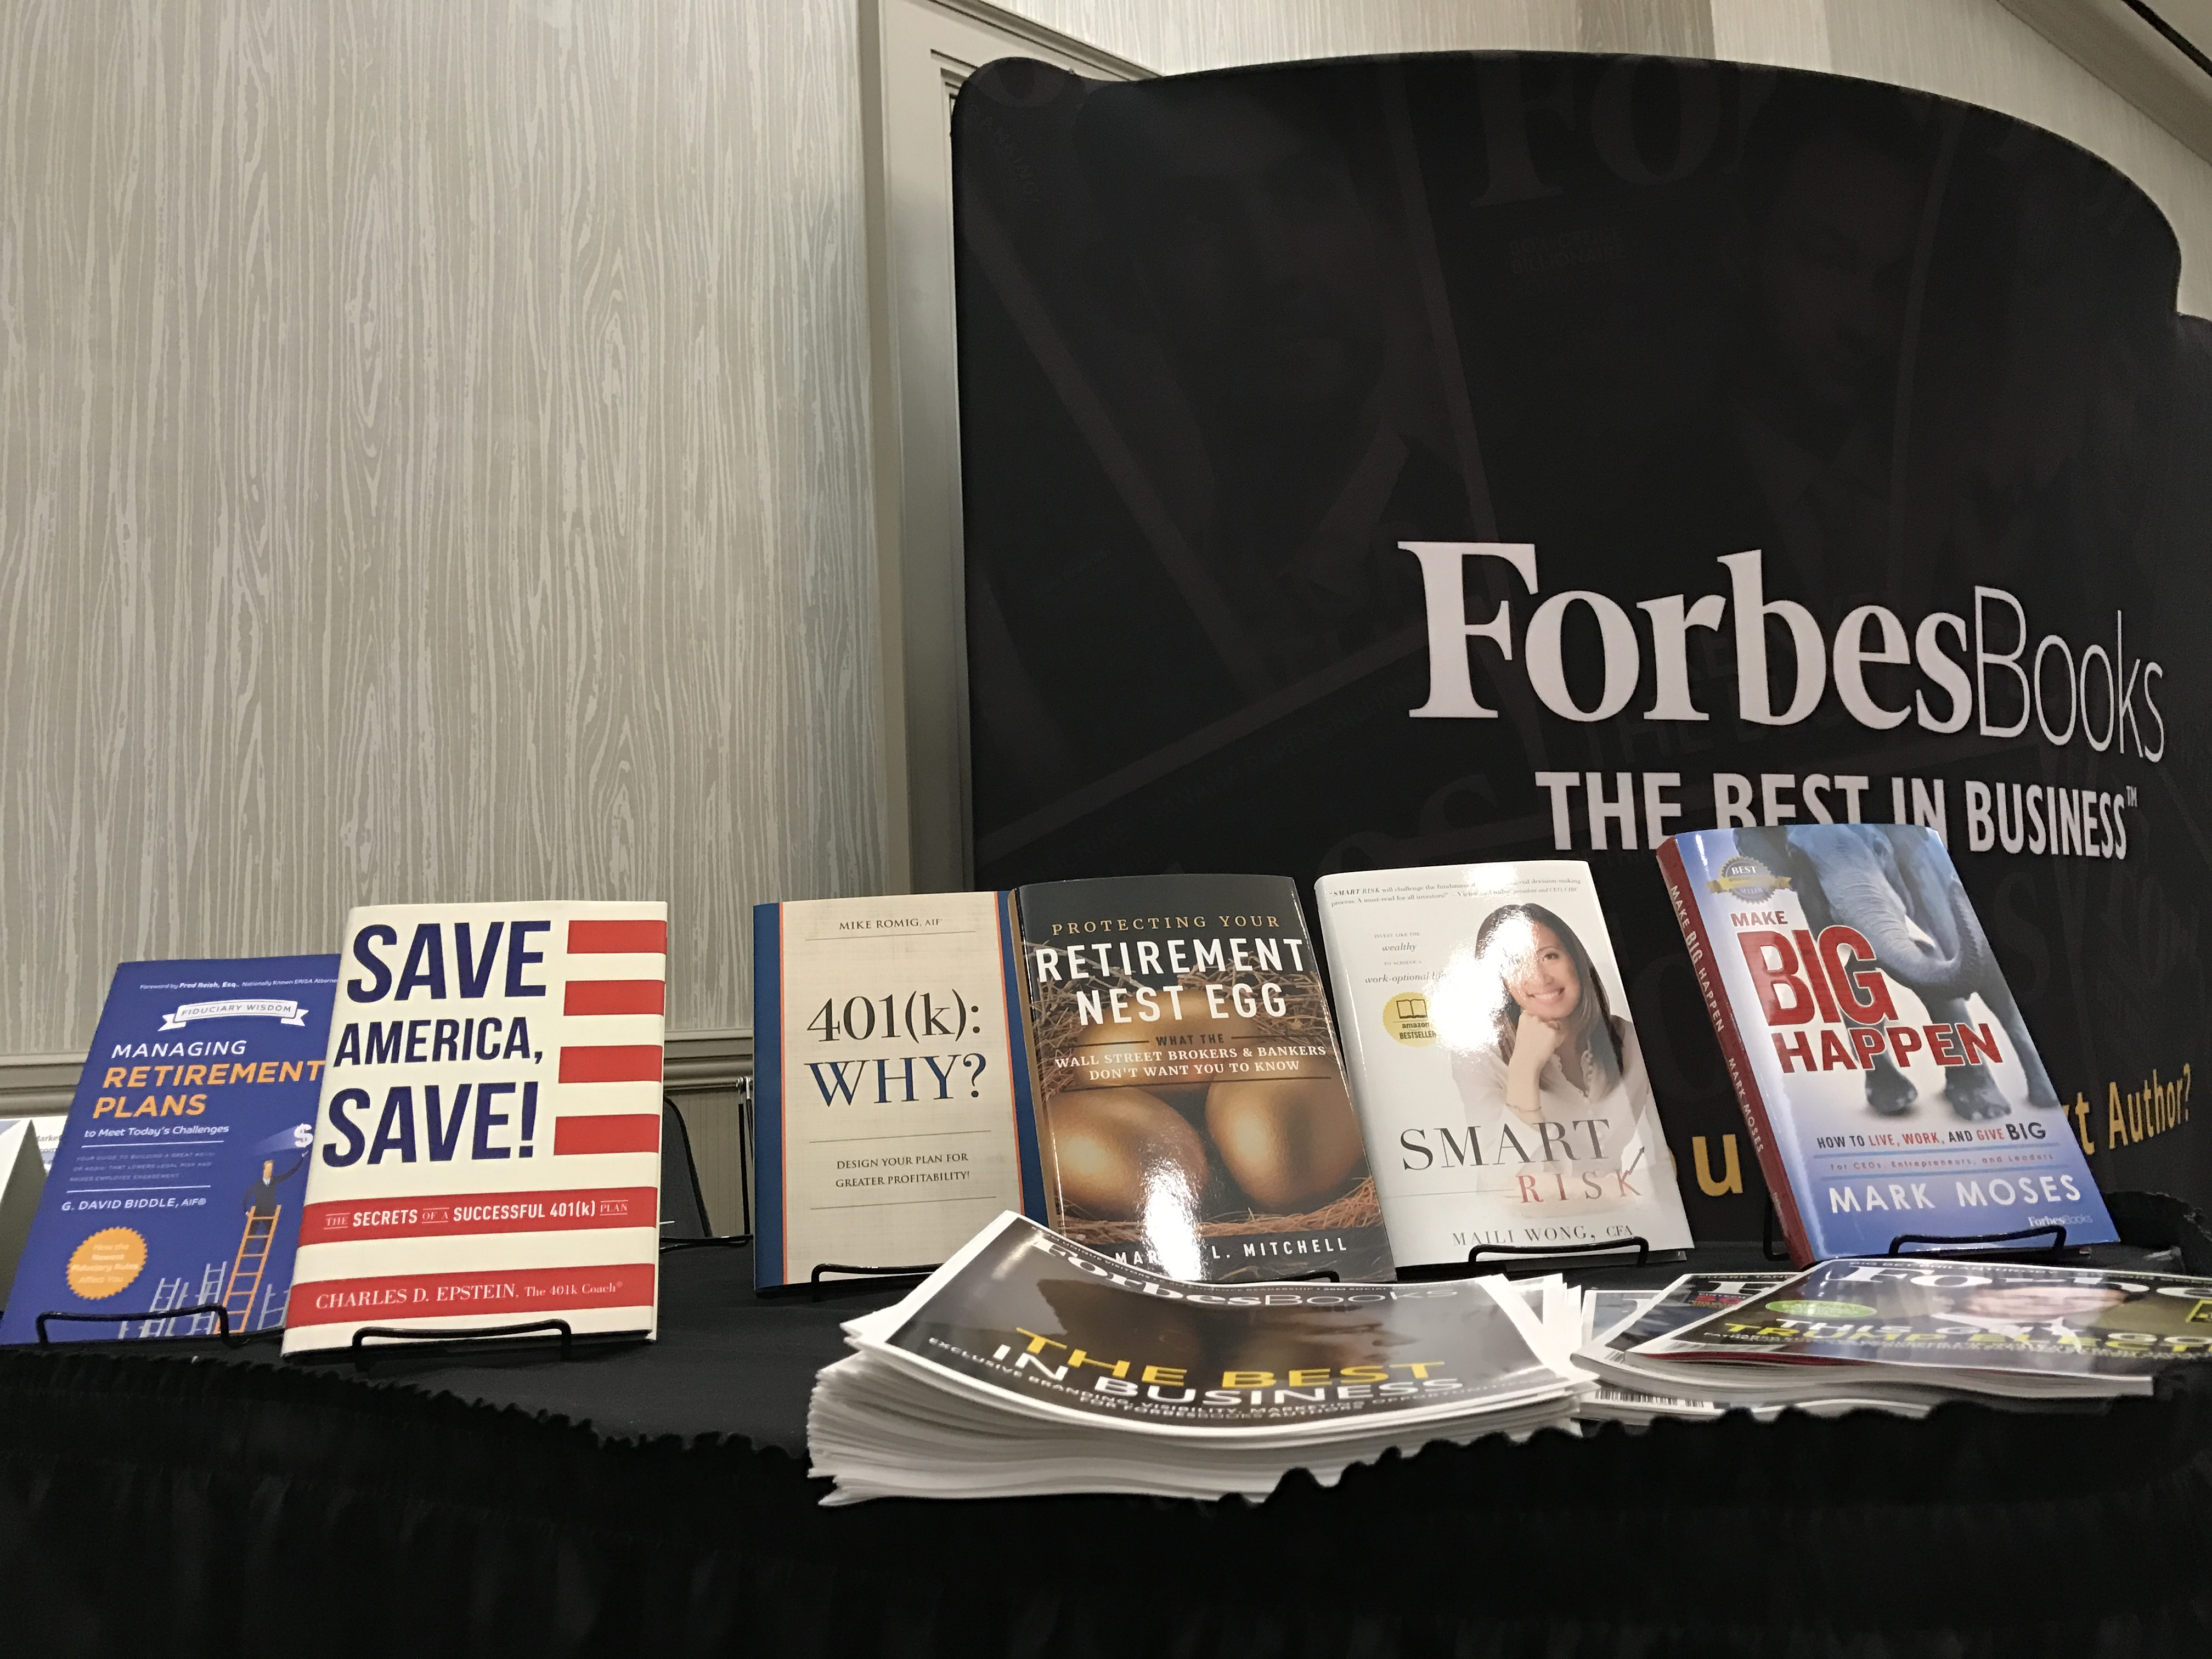 https://assets.sourcemedia.com/4b/2e/c06ae63a439db5fc8e5a64699e94/books-table.jpg